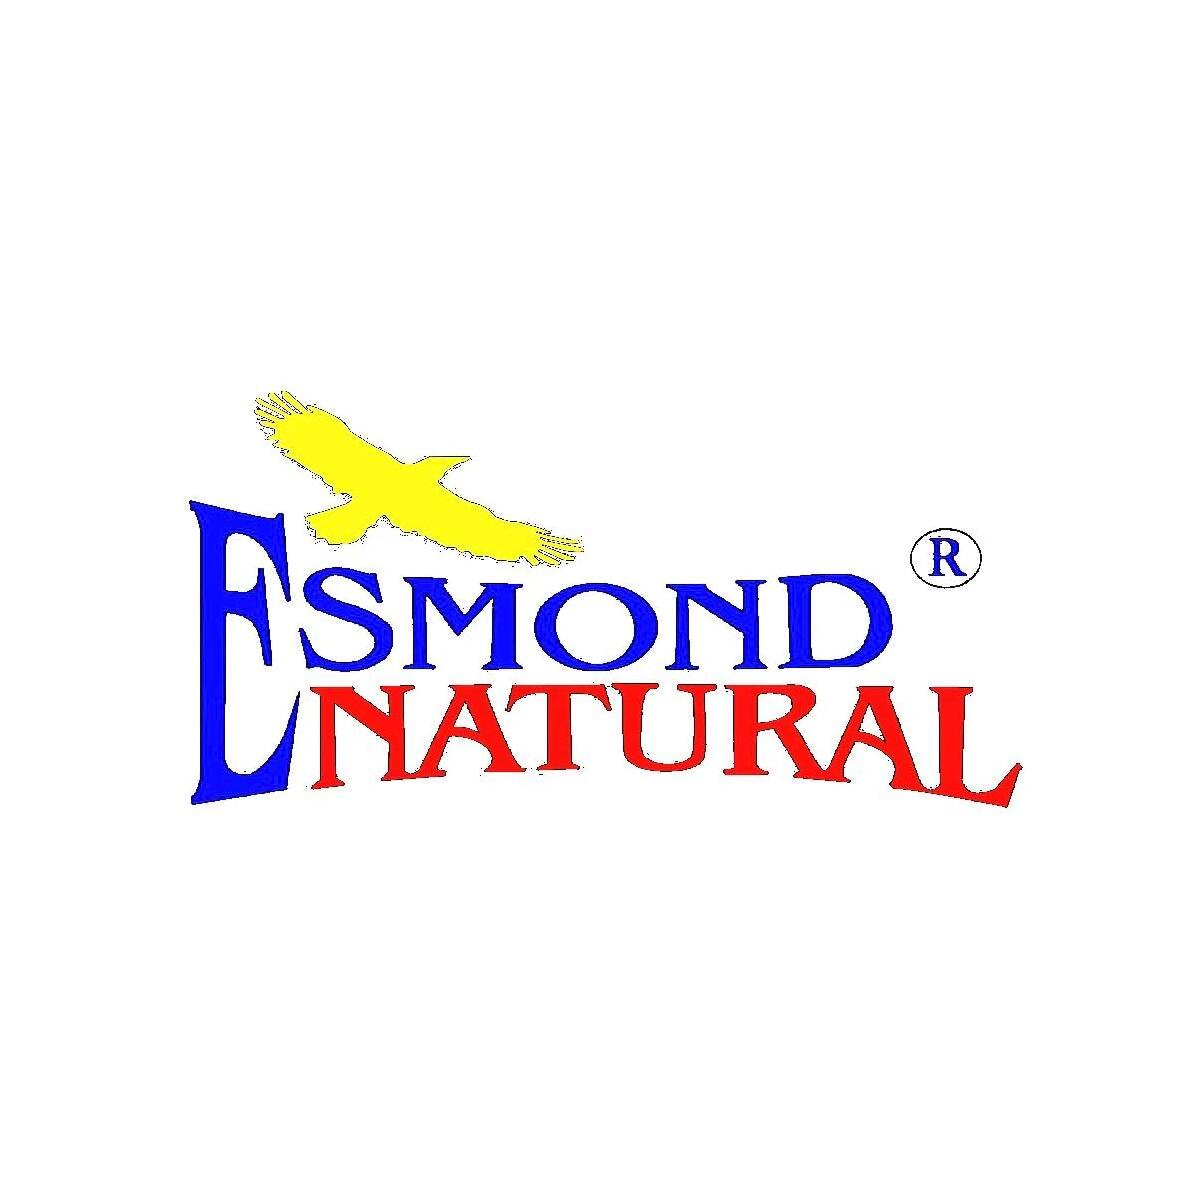 Esmond Natural: ENC Silybum Marianum Seed Oil Complex (Liver Support), GMP, Natural Product Assn Certified, Made in USA-1000mg, 60 Tablets